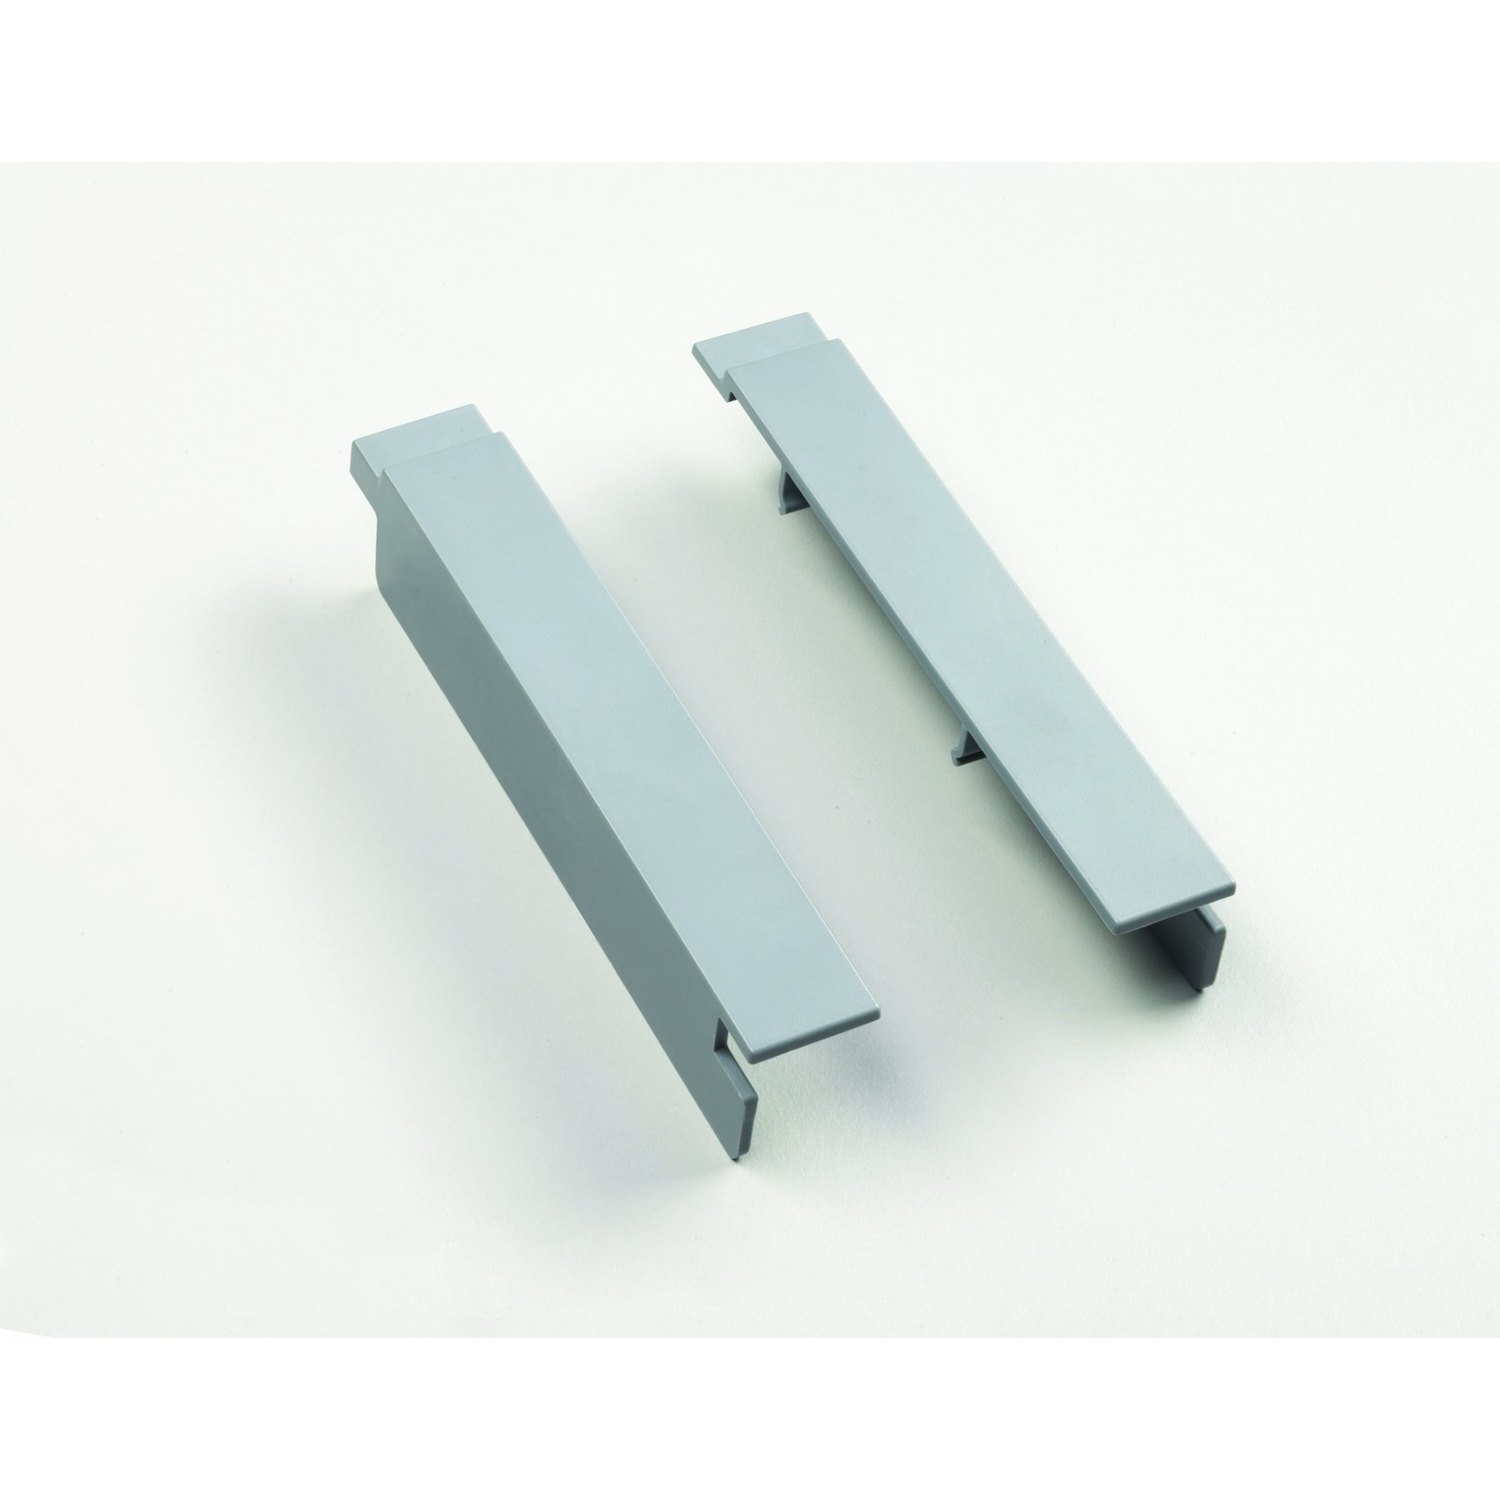 Craftsman VersaTrack 1 in. W x 1 in. D x 5-1/2 in. H Plastic Shelf ...